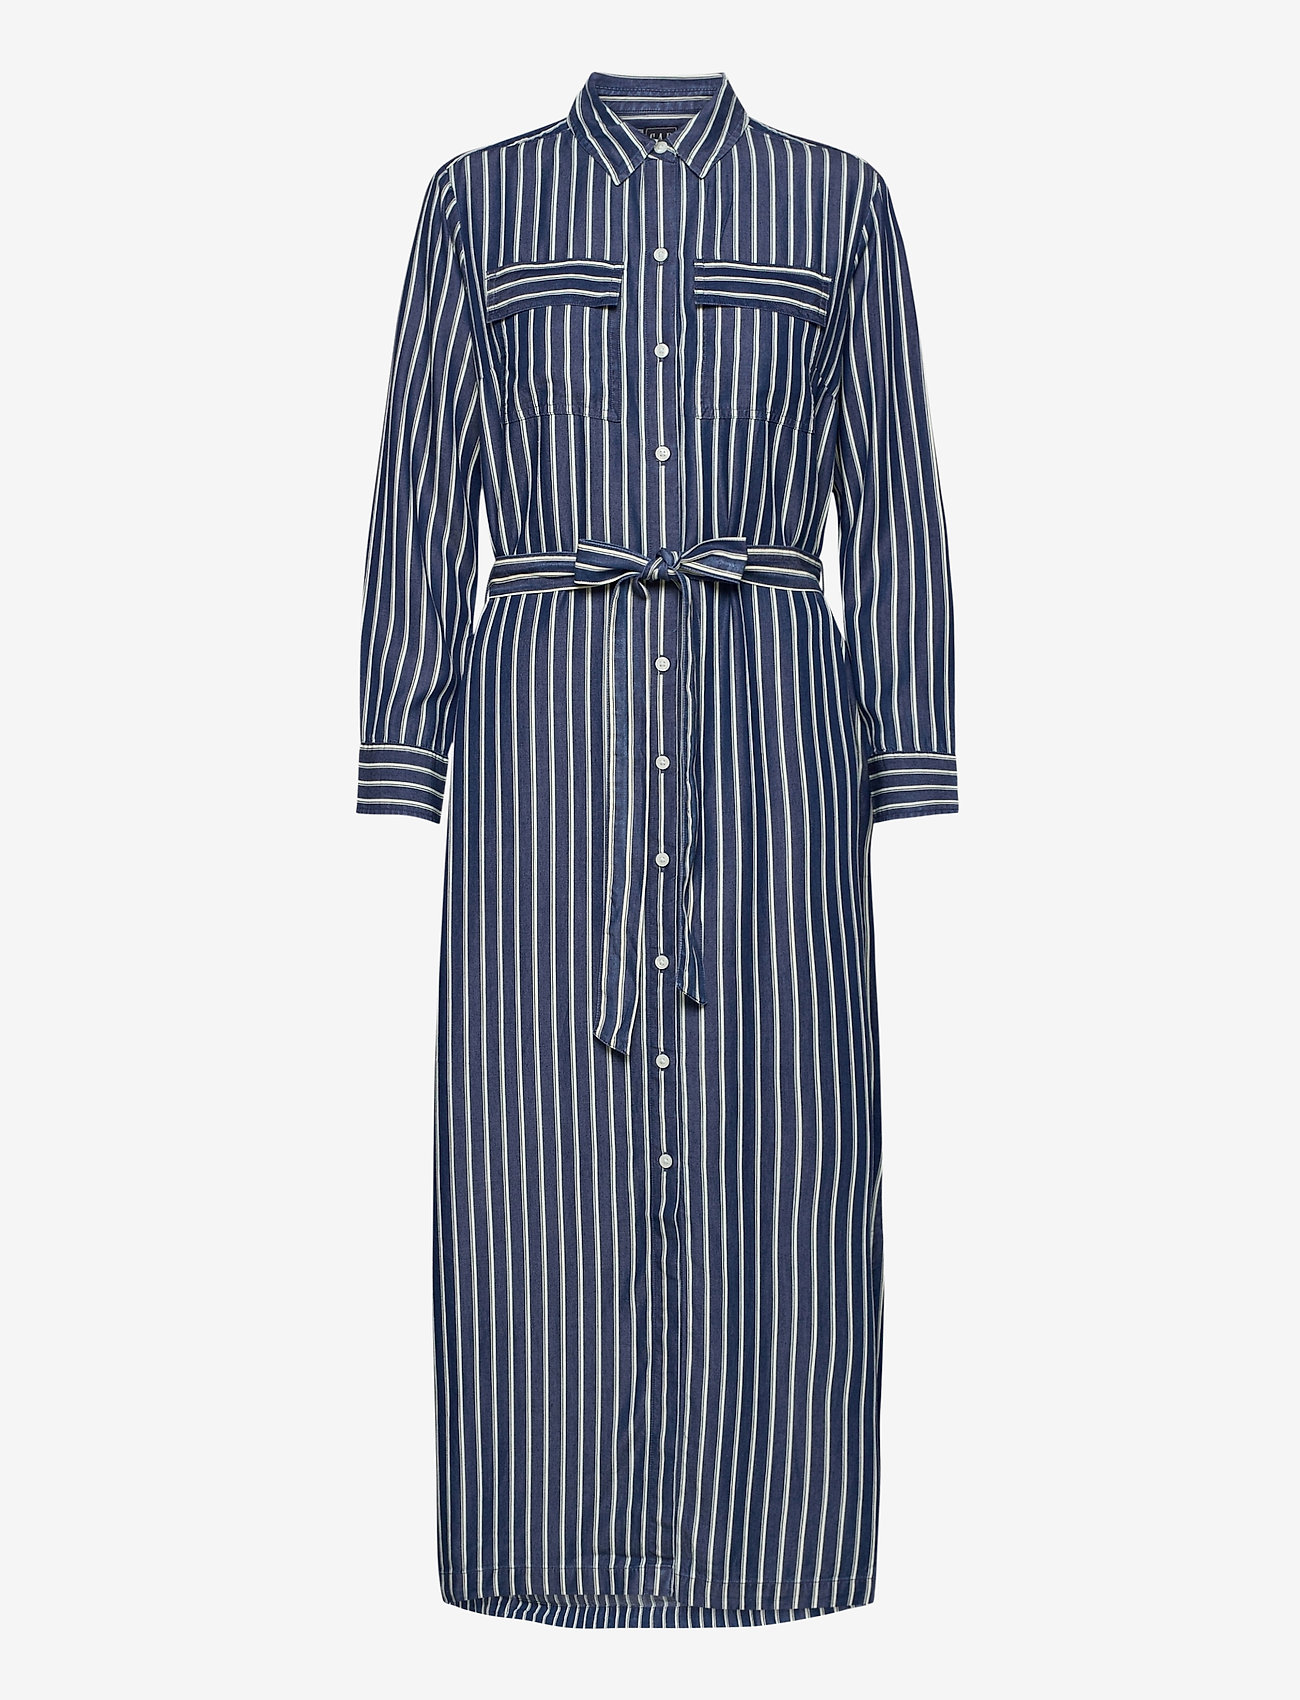 GAP - LS DRAPEY SHIRTDRS -STP - everyday dresses - blue stripe combo s - 0